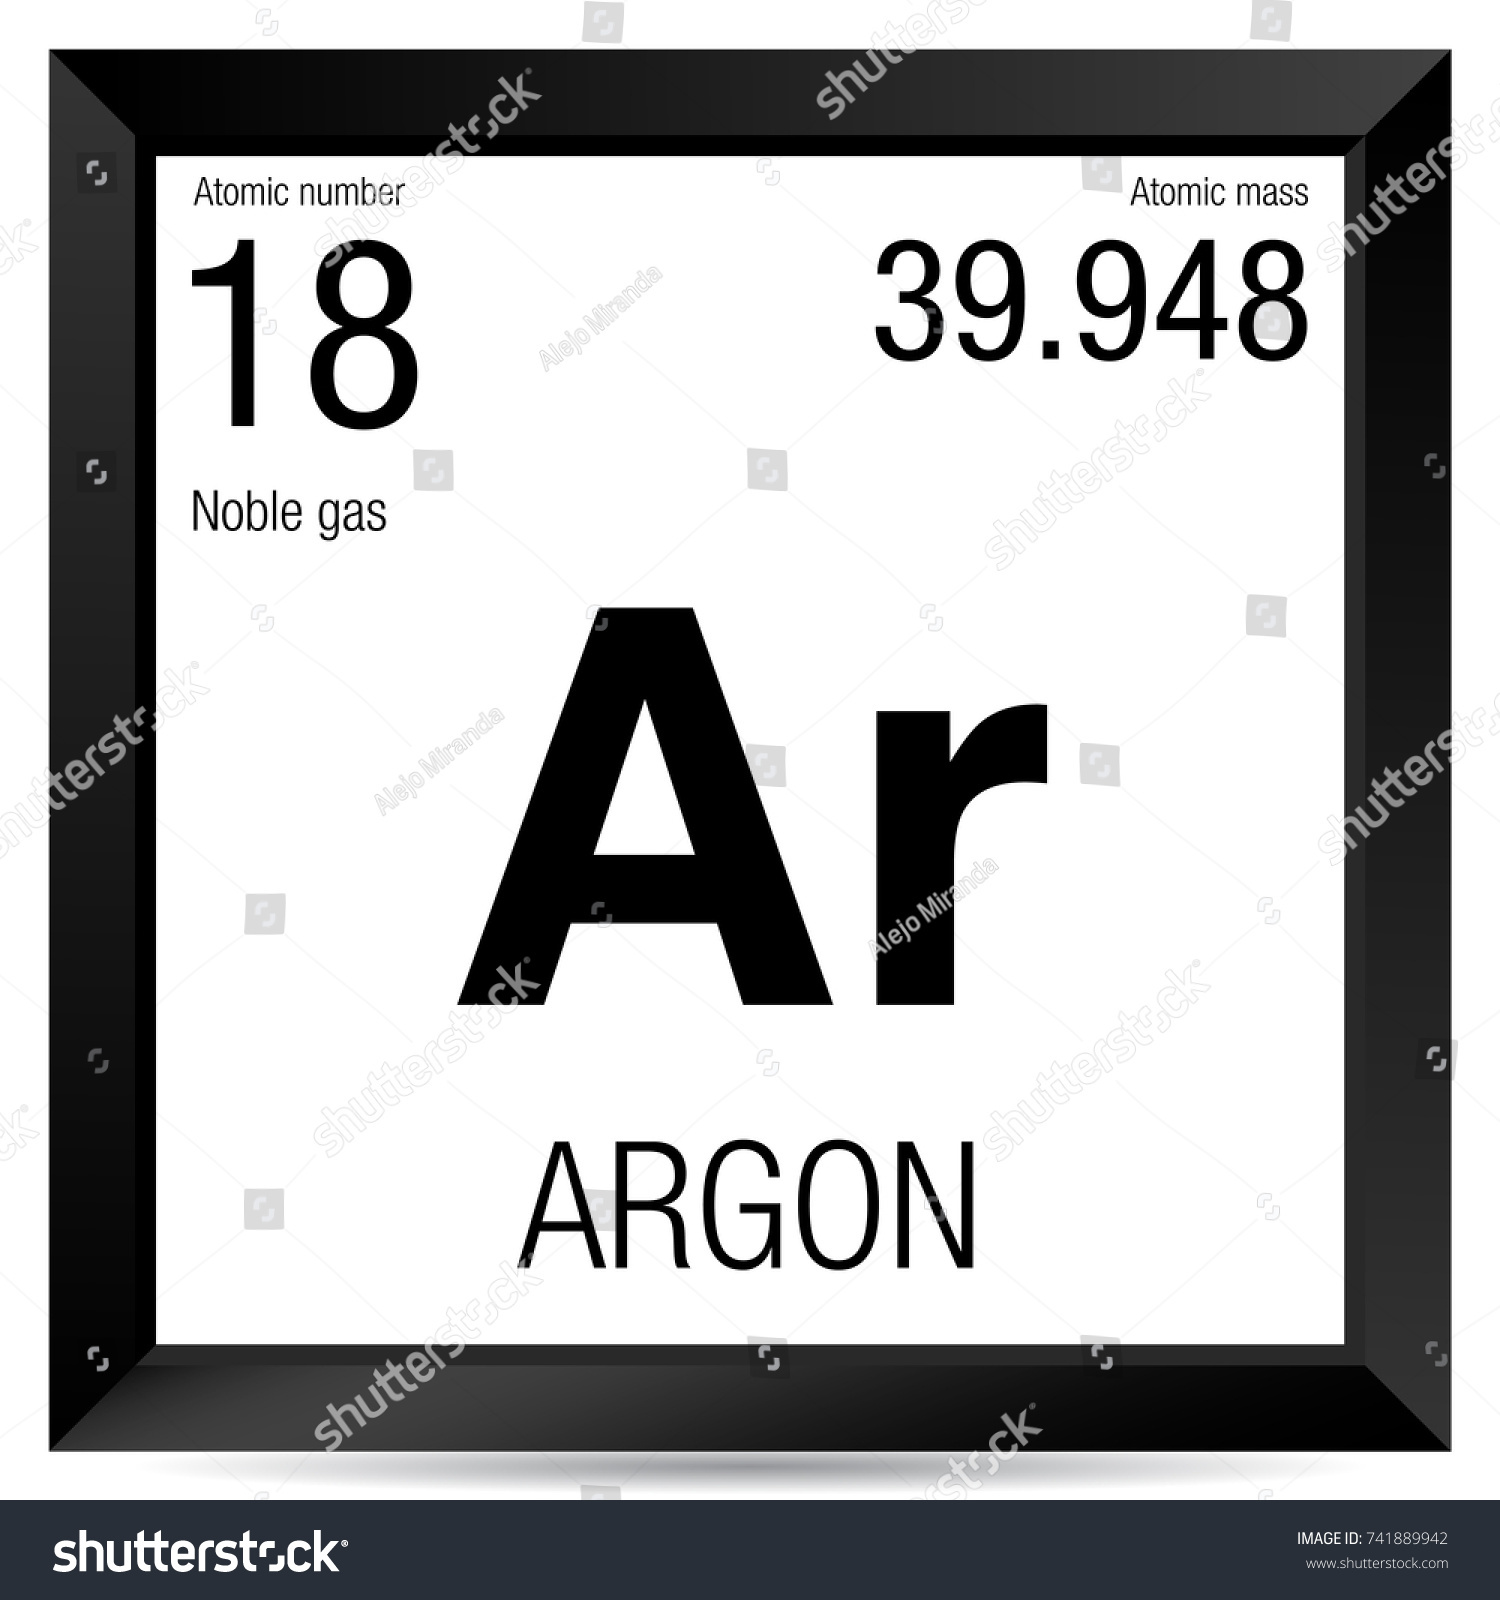 Copper periodic table symbol gallery periodic table images periodic table symbol quiz images periodic table images periodic table argon aviongoldcorp argon symbol element number gamestrikefo Gallery